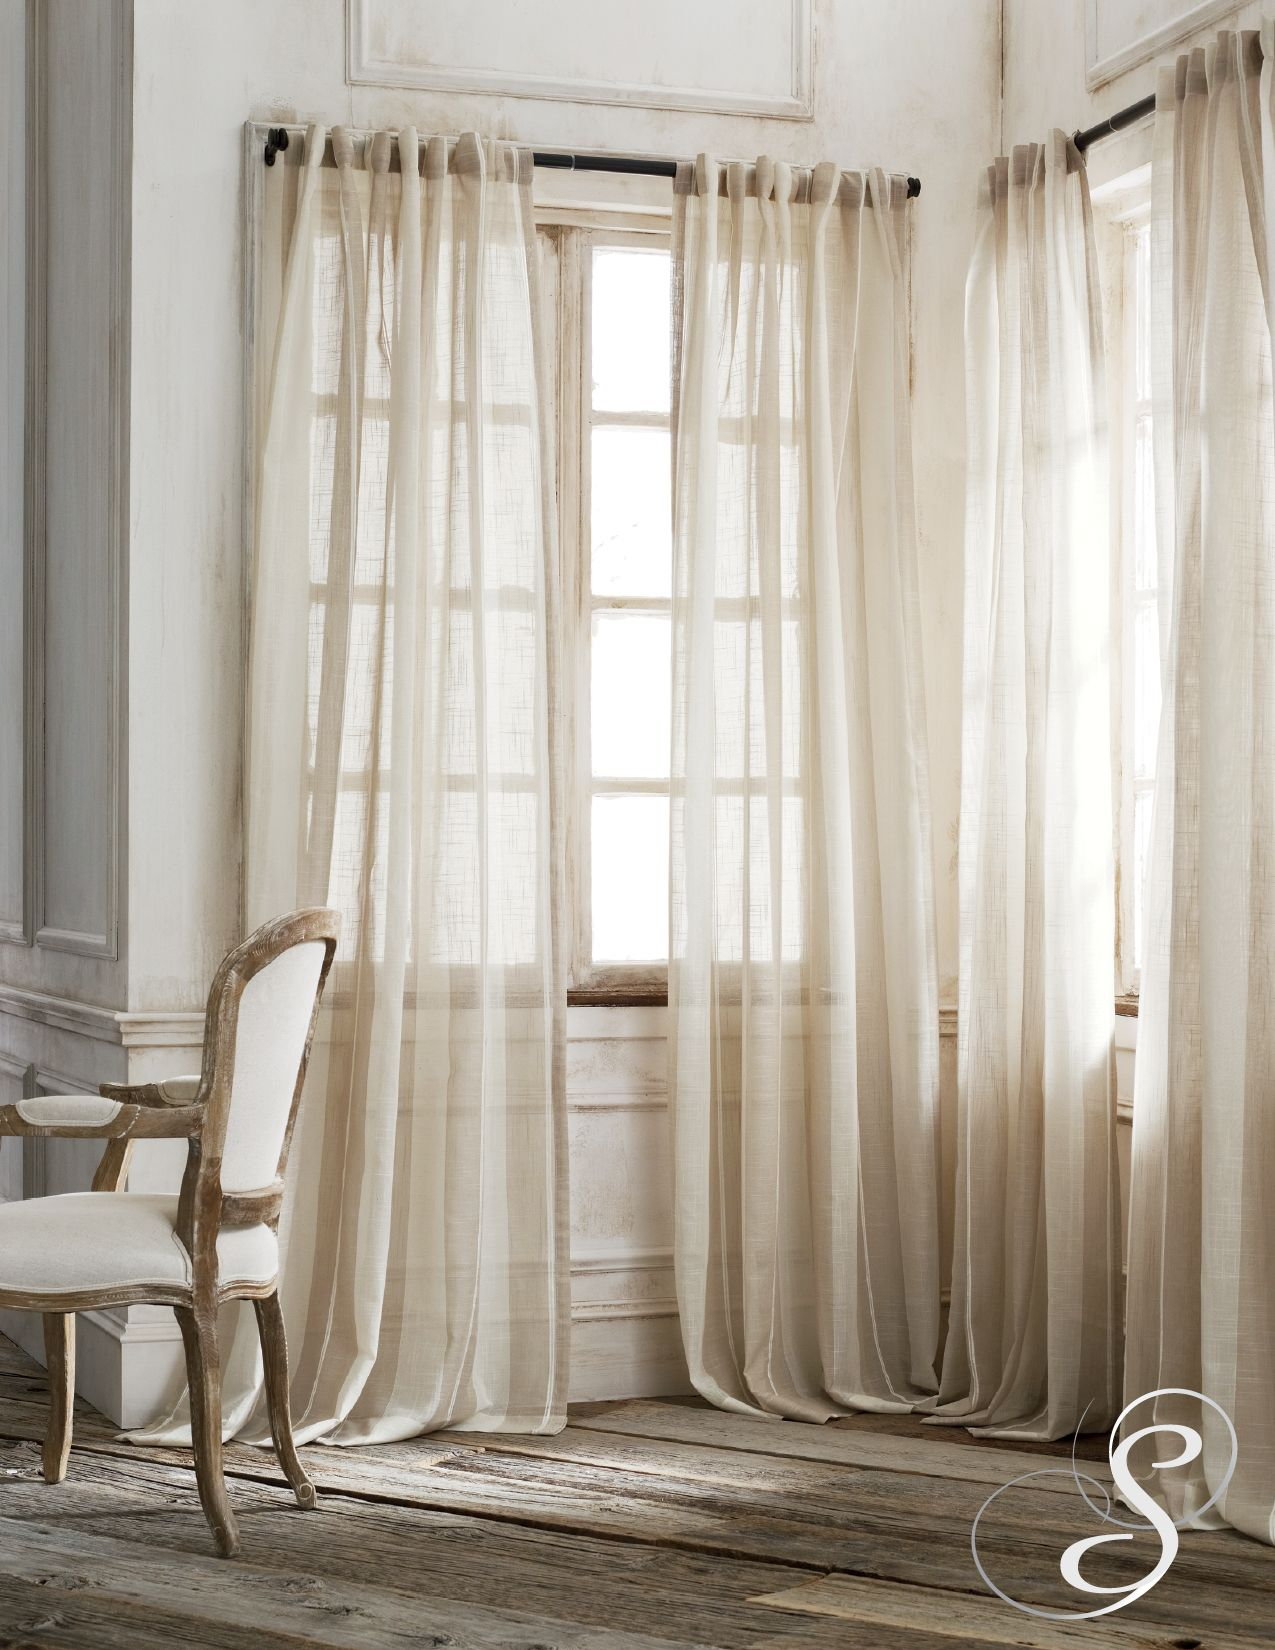 panels cafferata treatments baton grommet rouge darkening curtain window nature wayfair naturefloral drapes pdx room reviews floral andover mills thermal